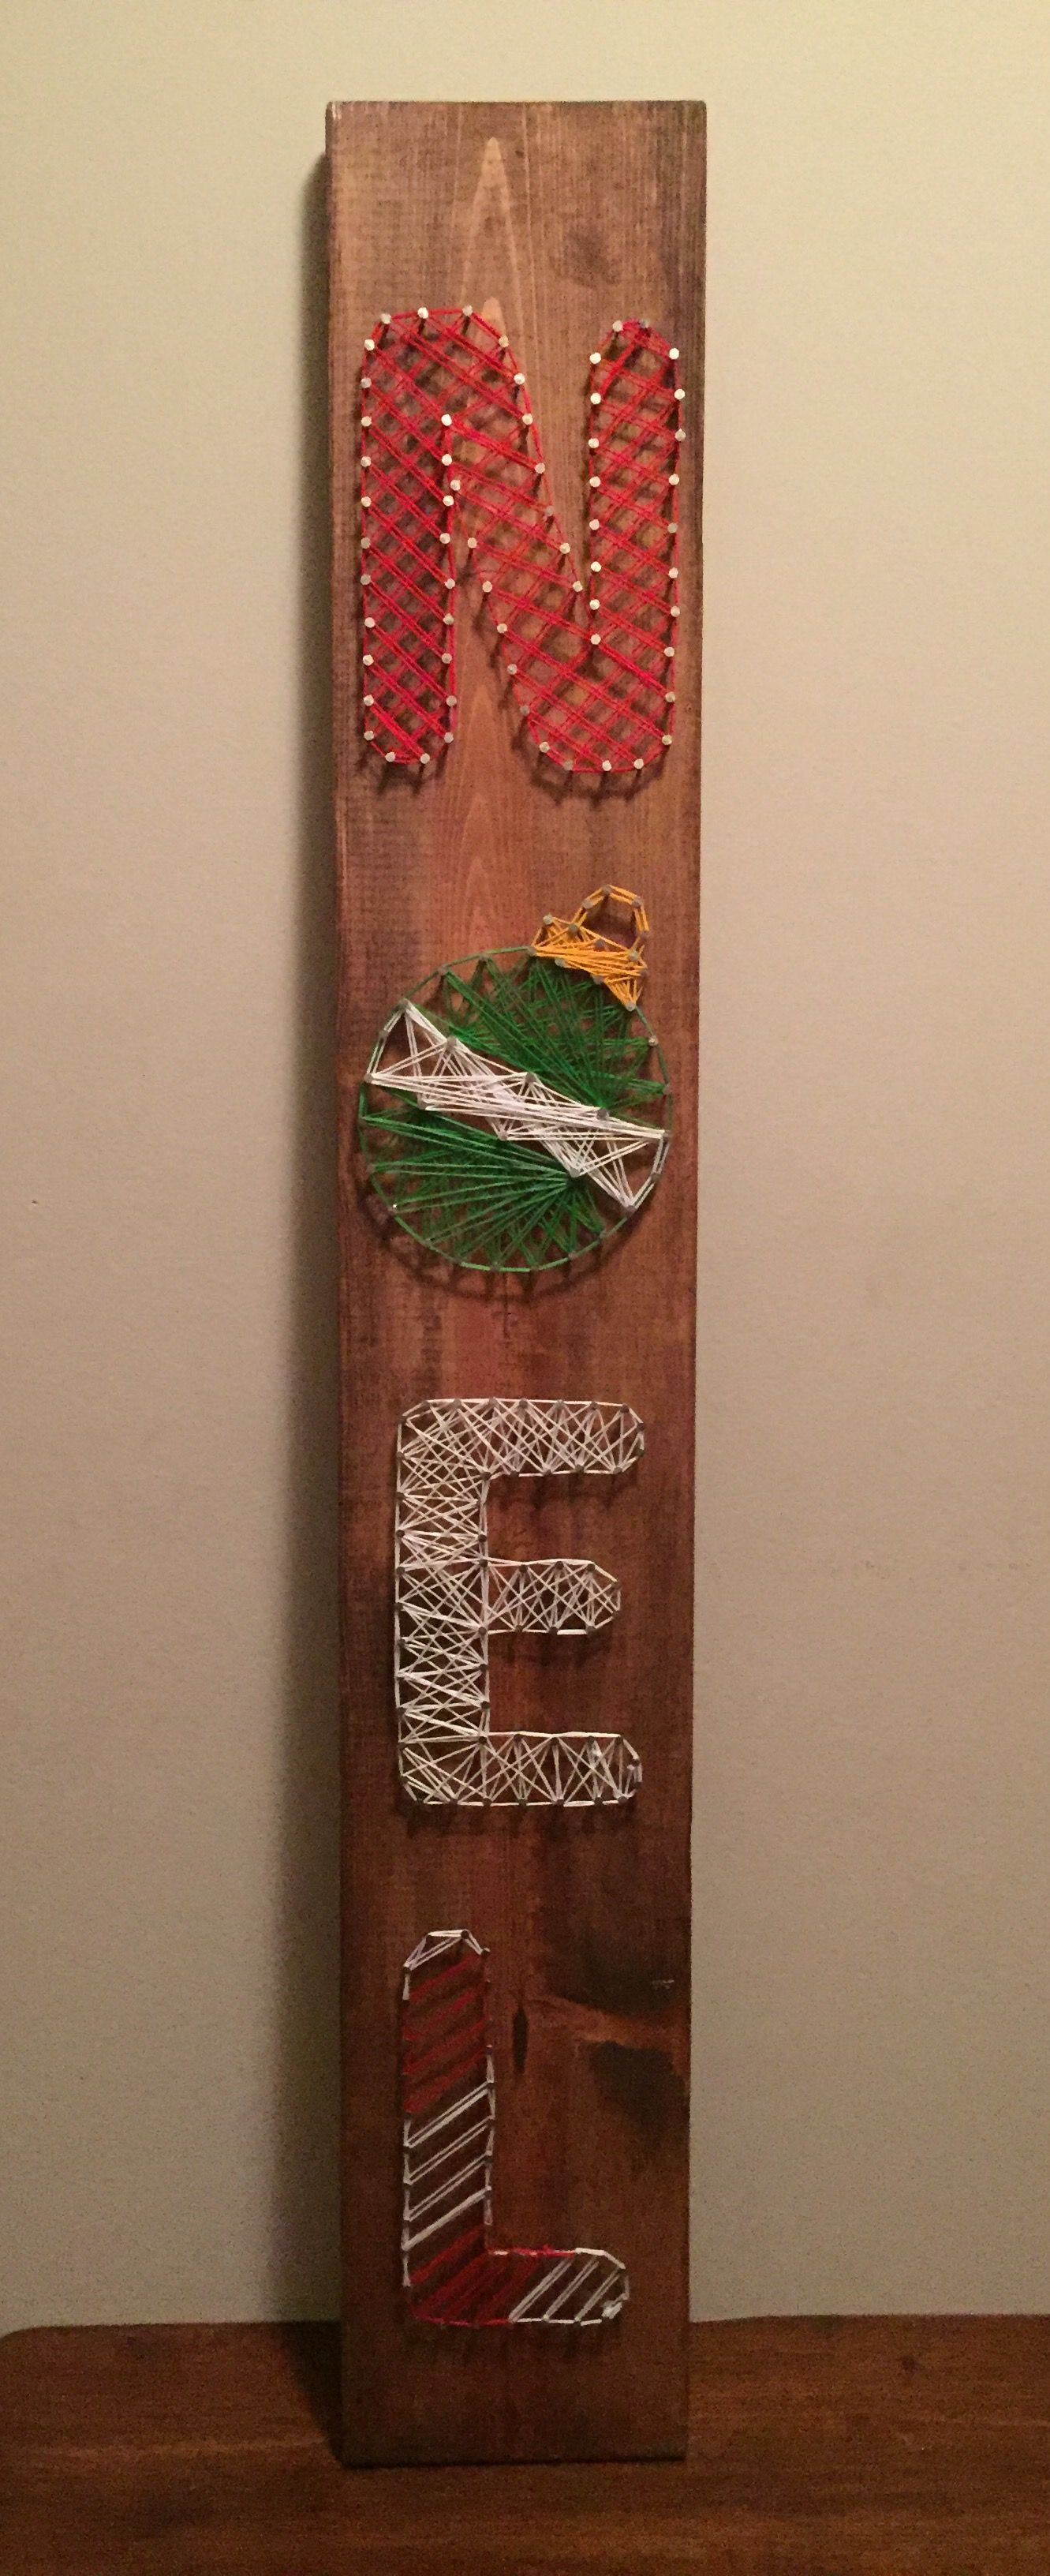 Noel Sign Made With String Art On Wood Plank Nail String Art